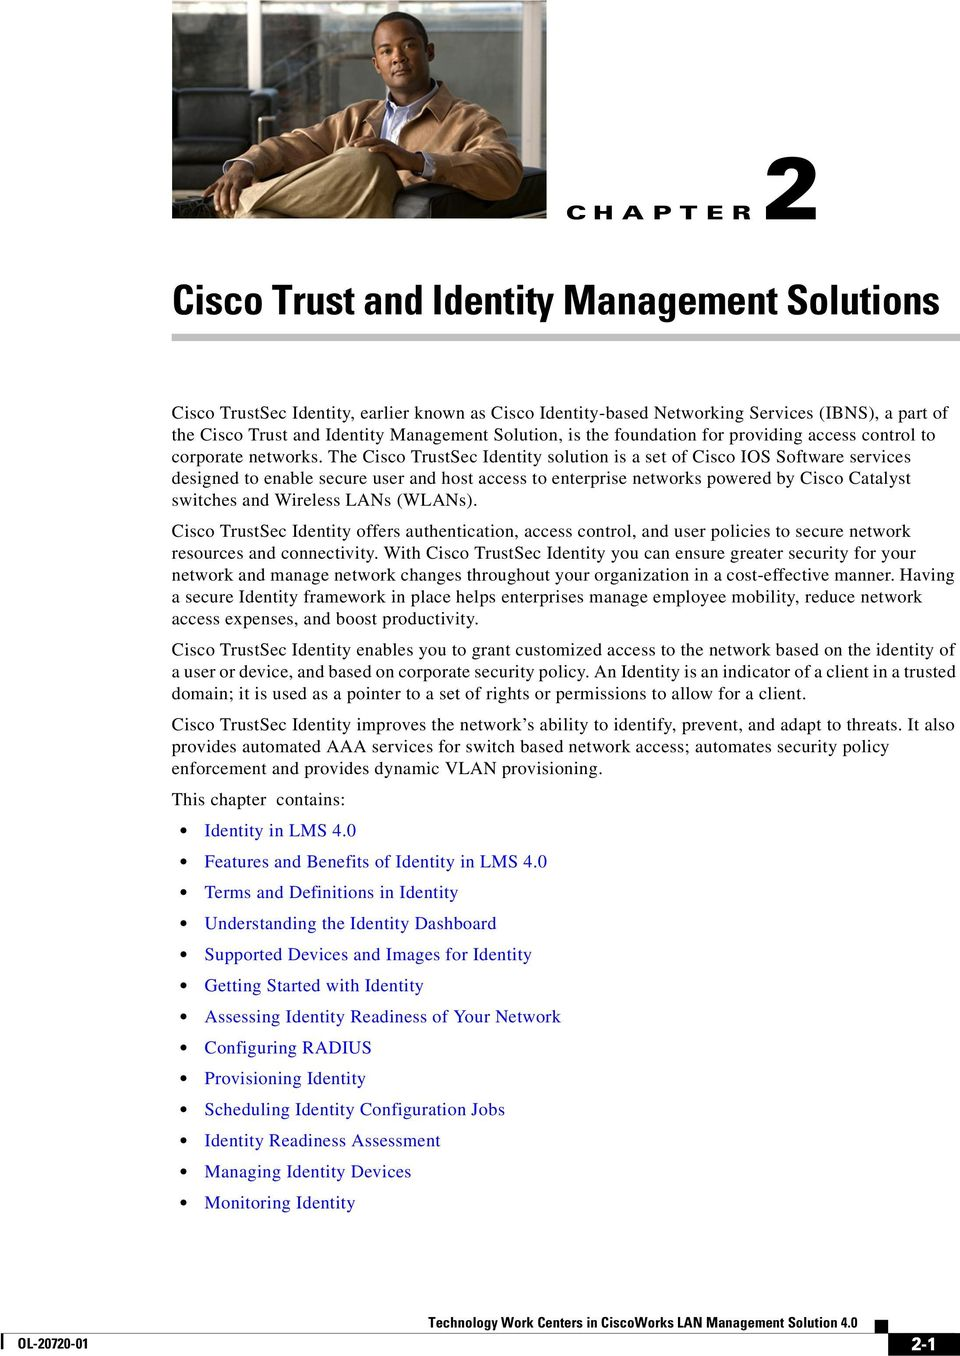 The Cisco TrustSec Identity solution is a set of Cisco IOS Software services designed to enable secure user and host access to enterprise networks powered by Cisco Catalyst switches and Wireless LANs